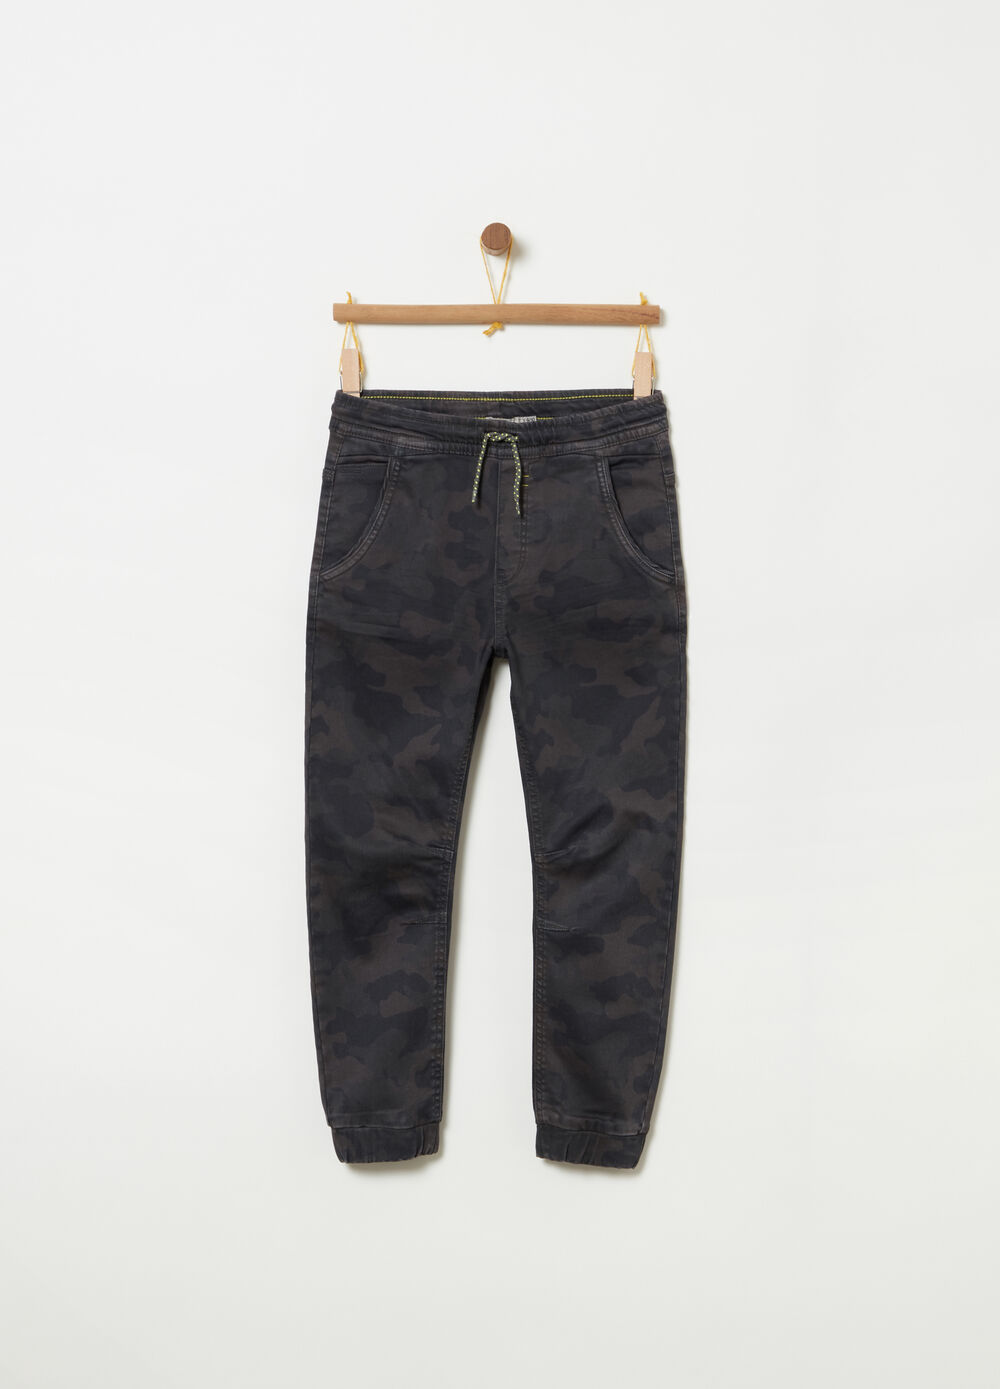 French Terry denim camouflage joggers